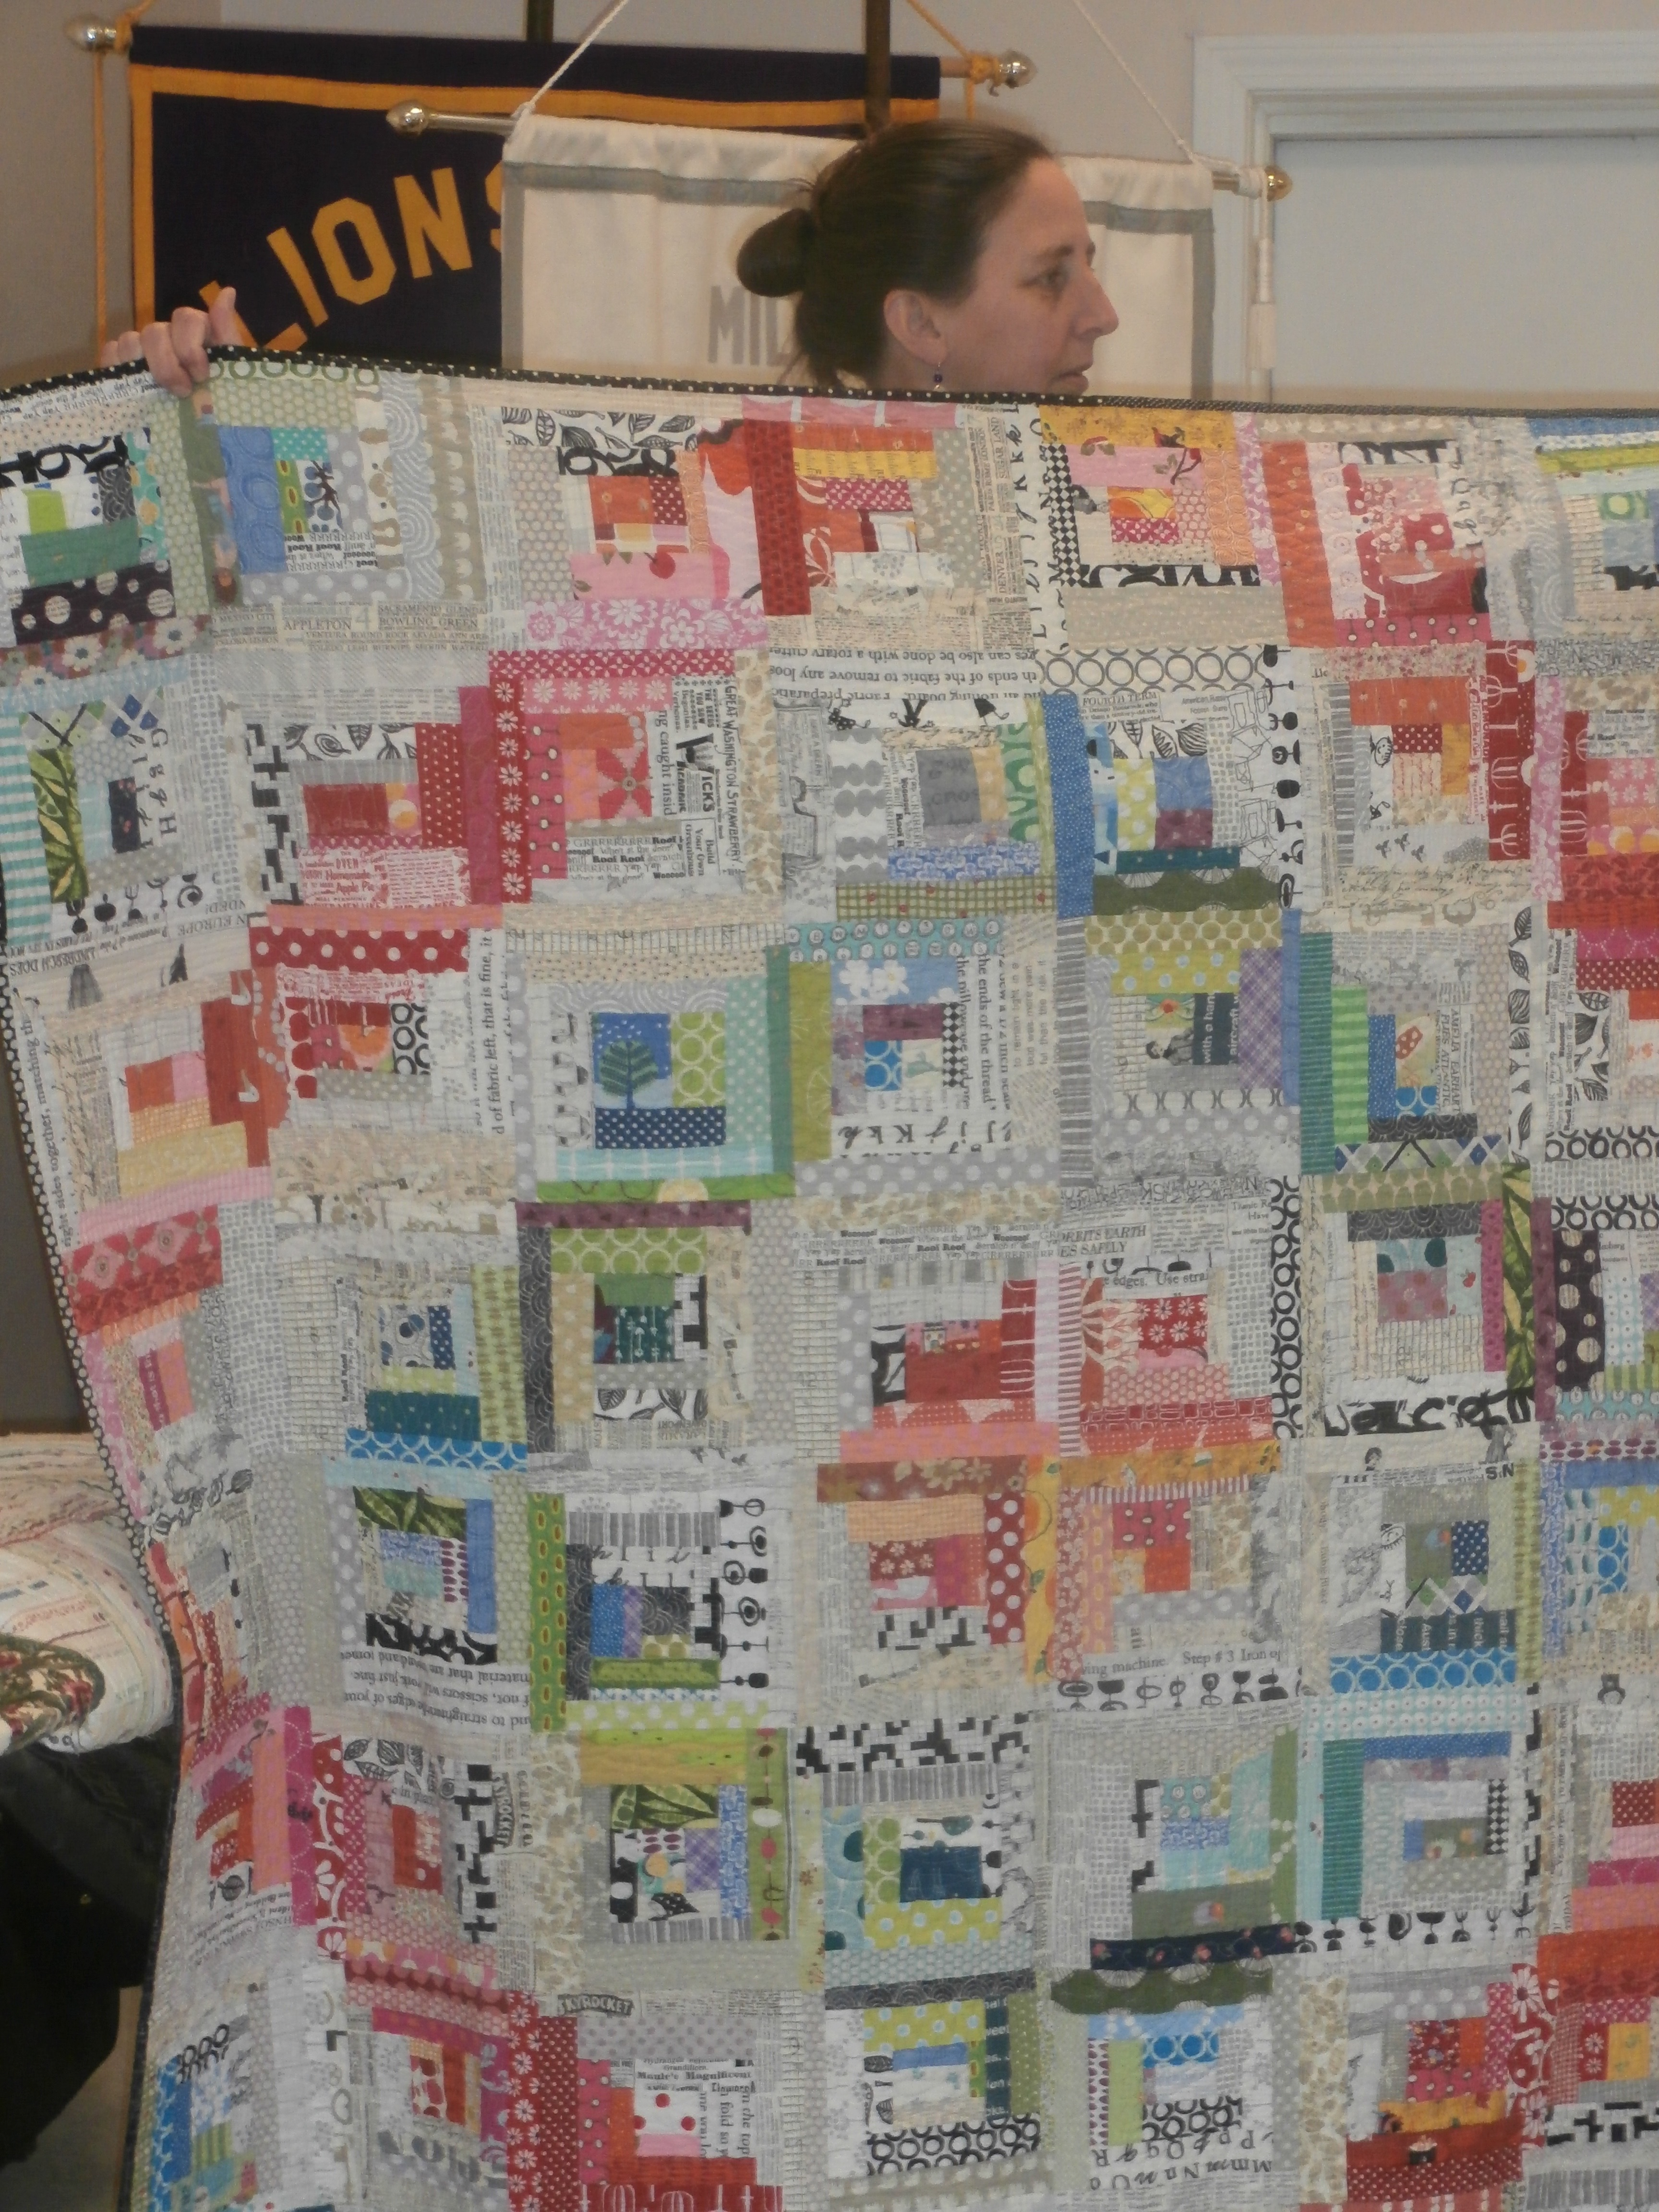 Blog Readers' Quilts and Quilting Information | Louisa Enright's Blog : quilting information - Adamdwight.com